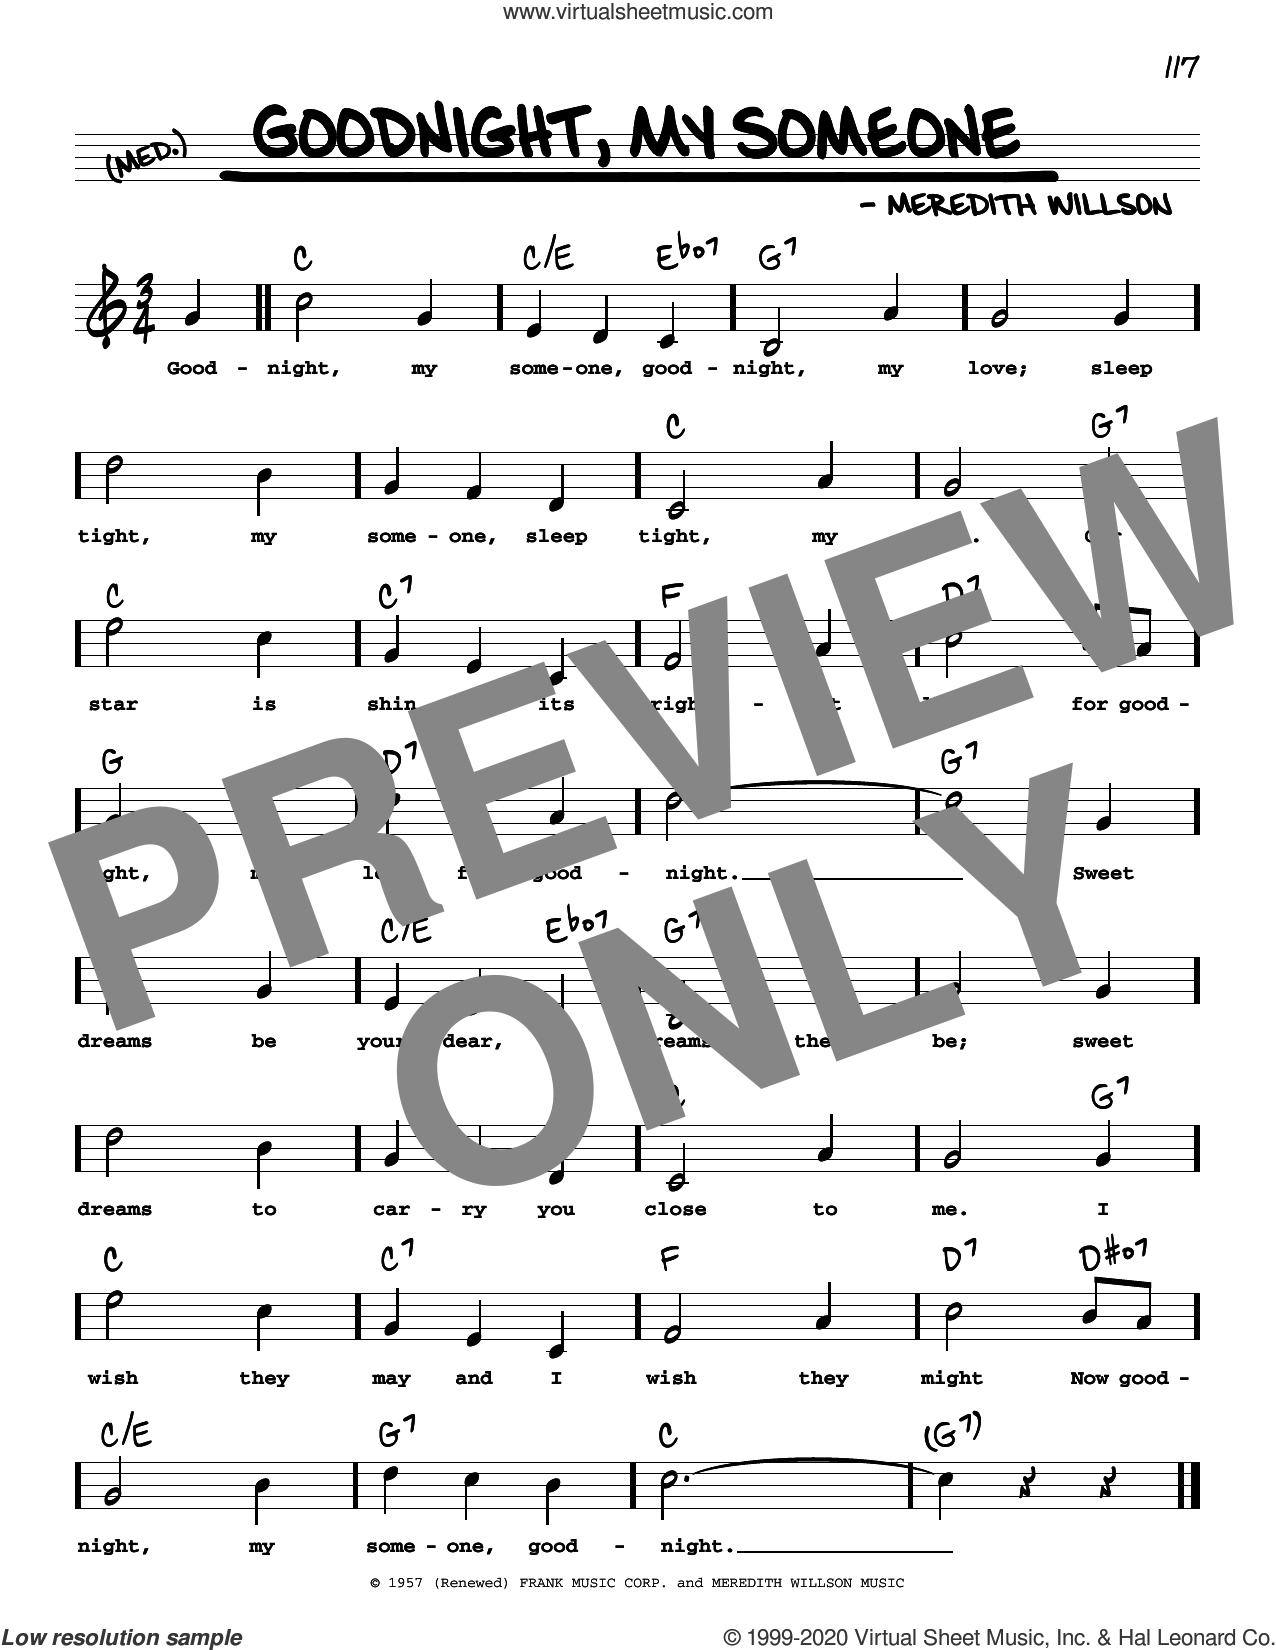 Goodnight, My Someone (High Voice) (from The Music Man) sheet music for voice and other instruments (real book with lyrics) by Meredith Willson, intermediate skill level